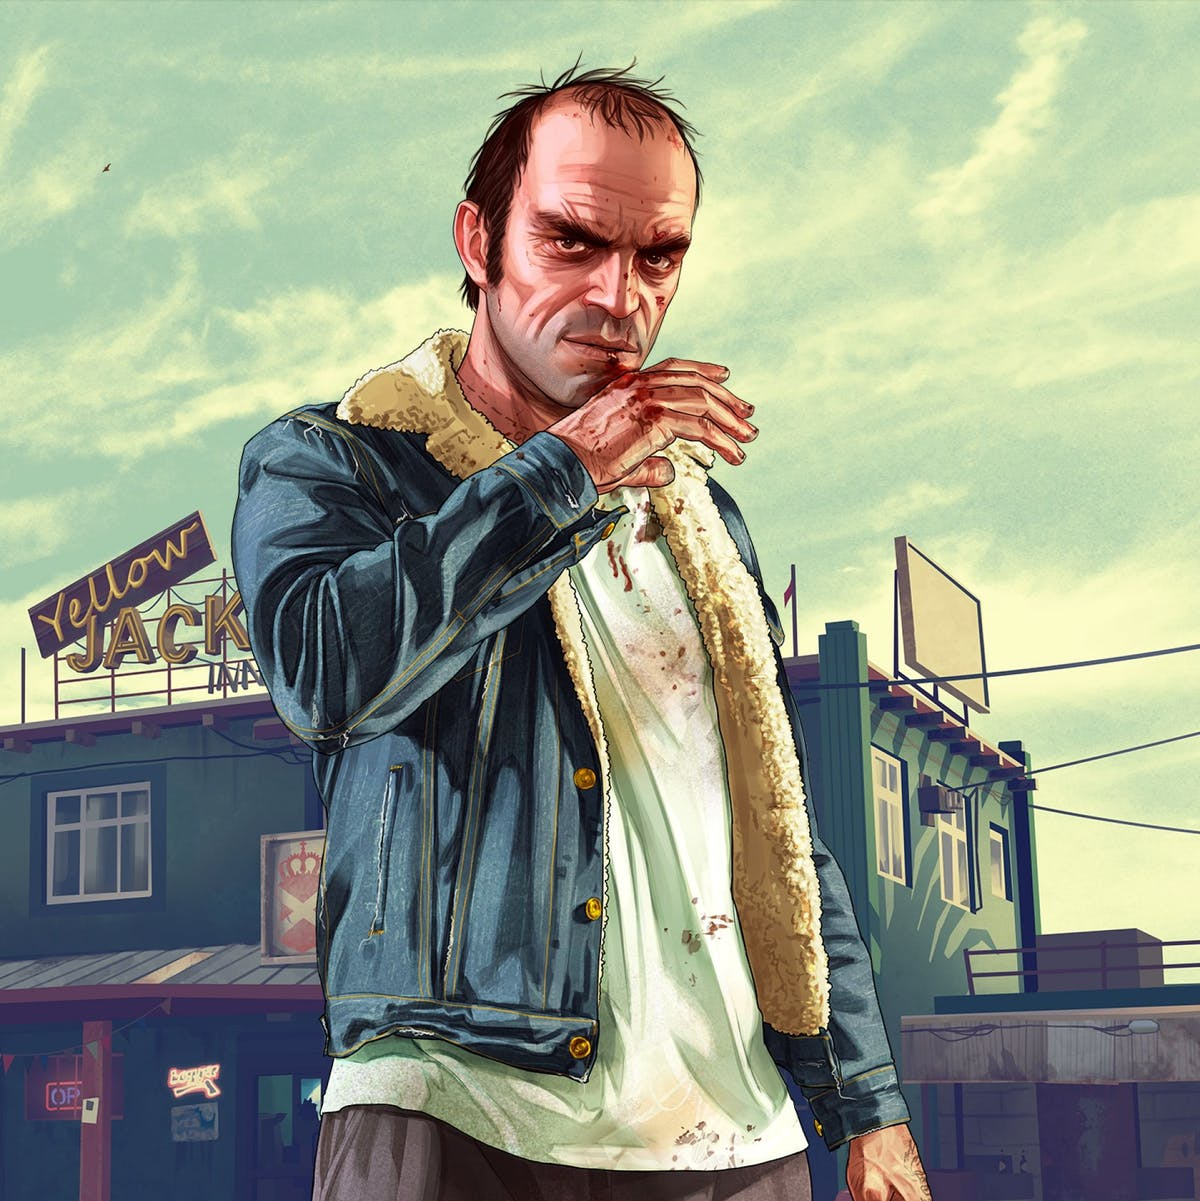 'GTA 6' release date likely 2020 or 2021, 'GTA 5' actor Steven Ogg says